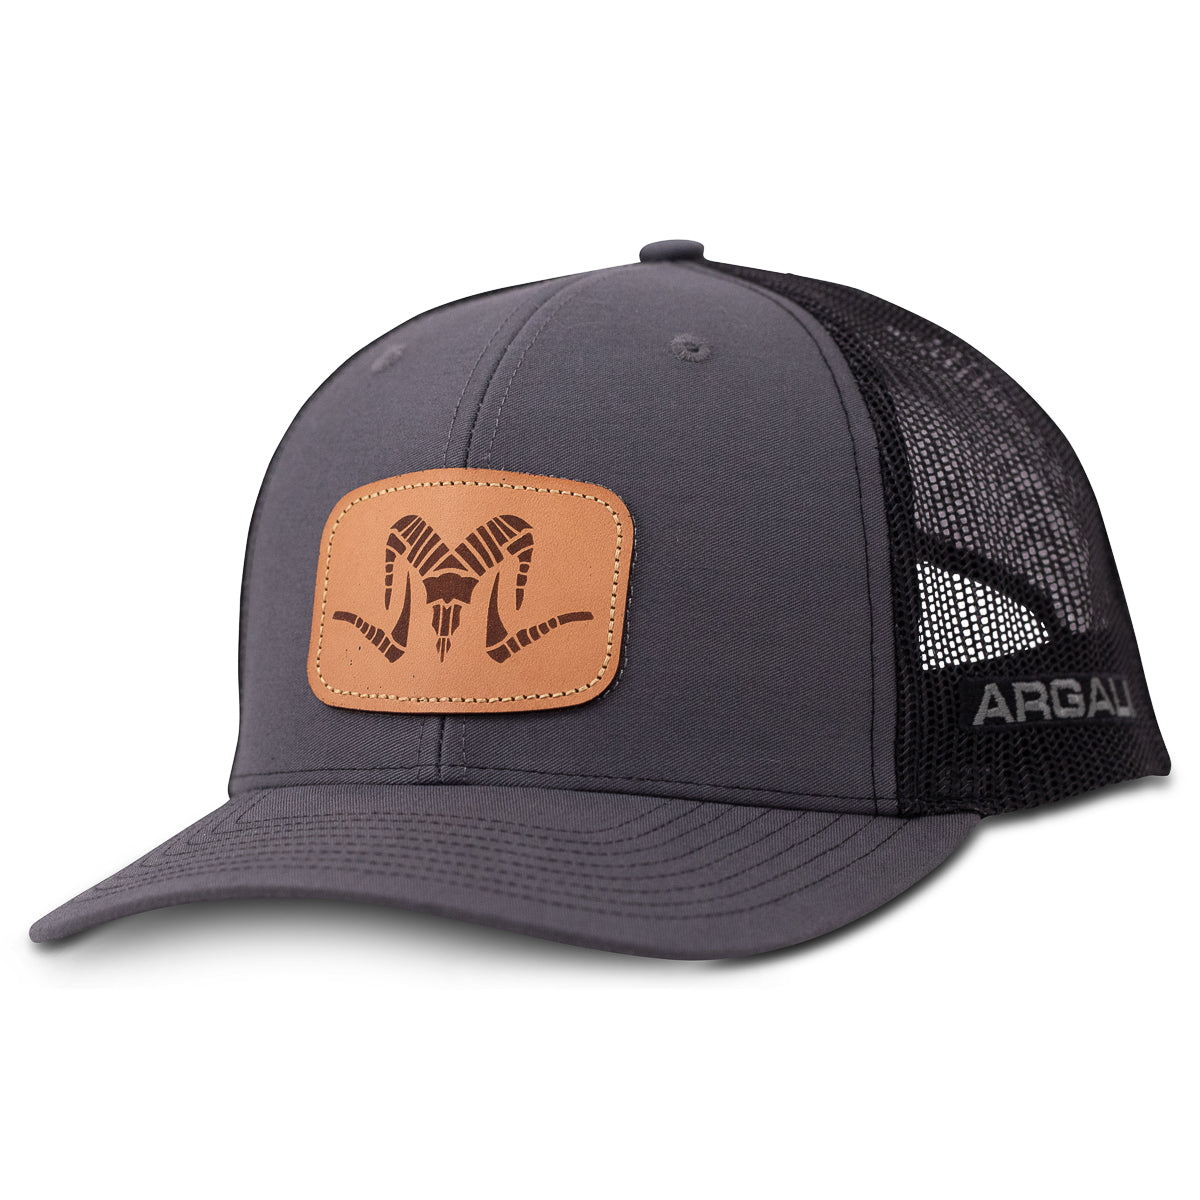 Argali Leather Patch Grey Front Hat